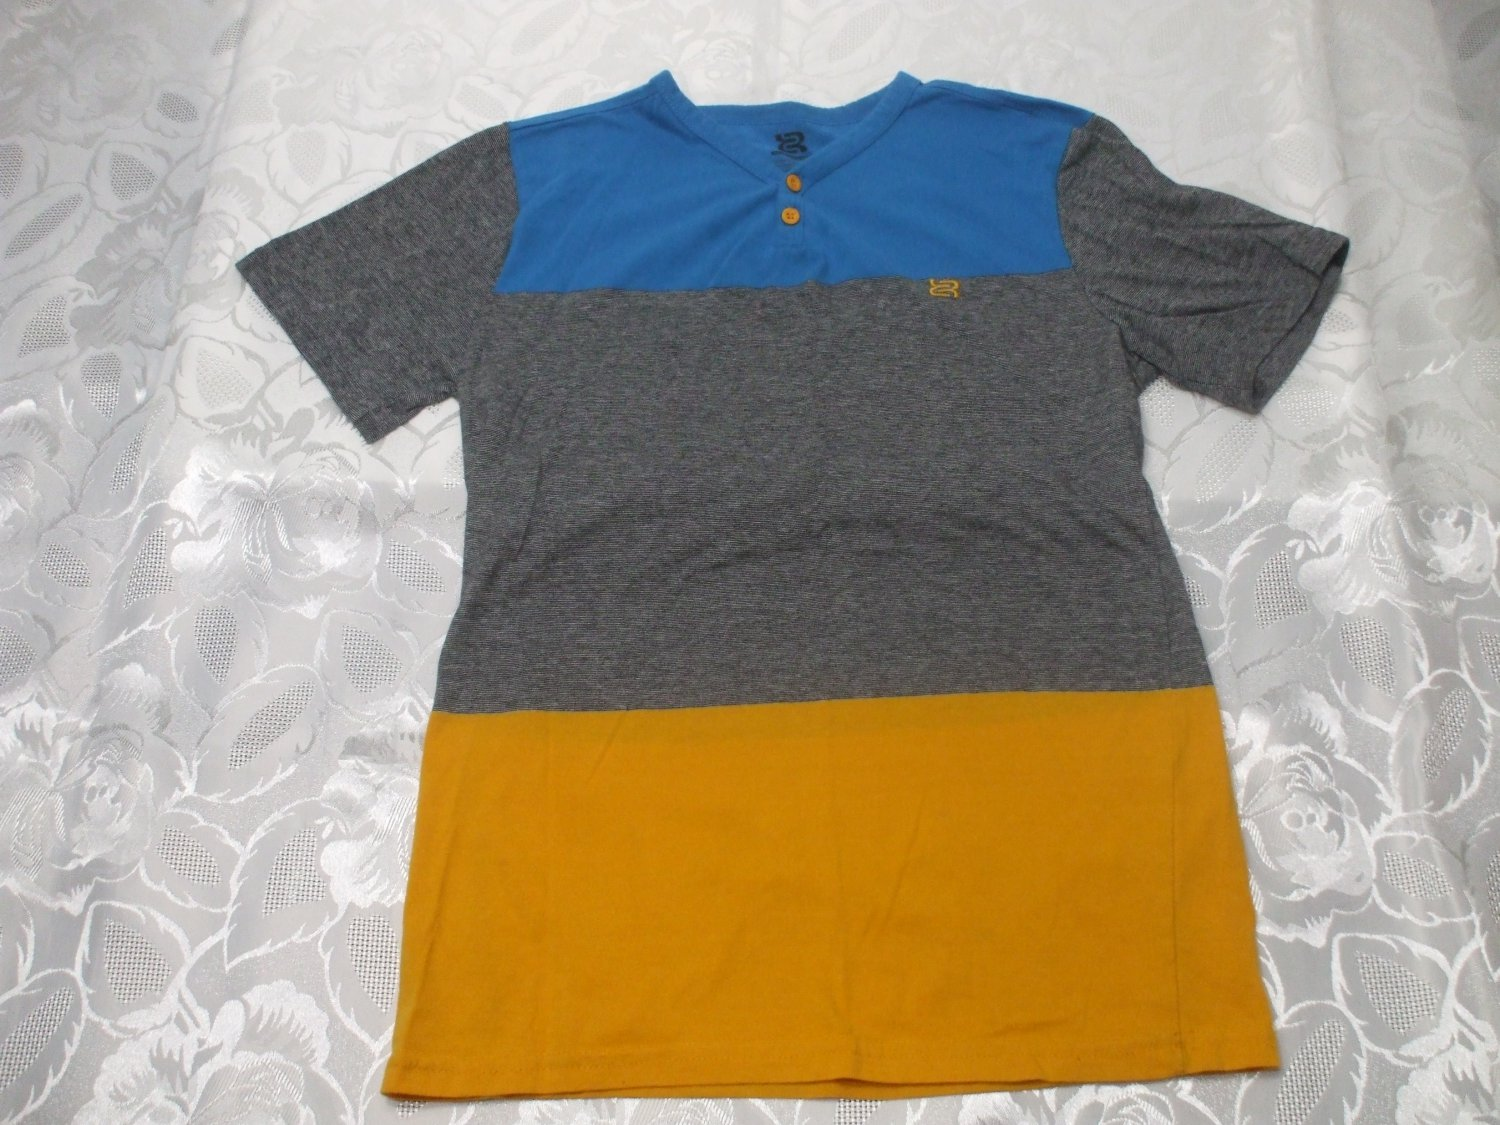 Kids Tricolored T-shirt Small 8-10 years old